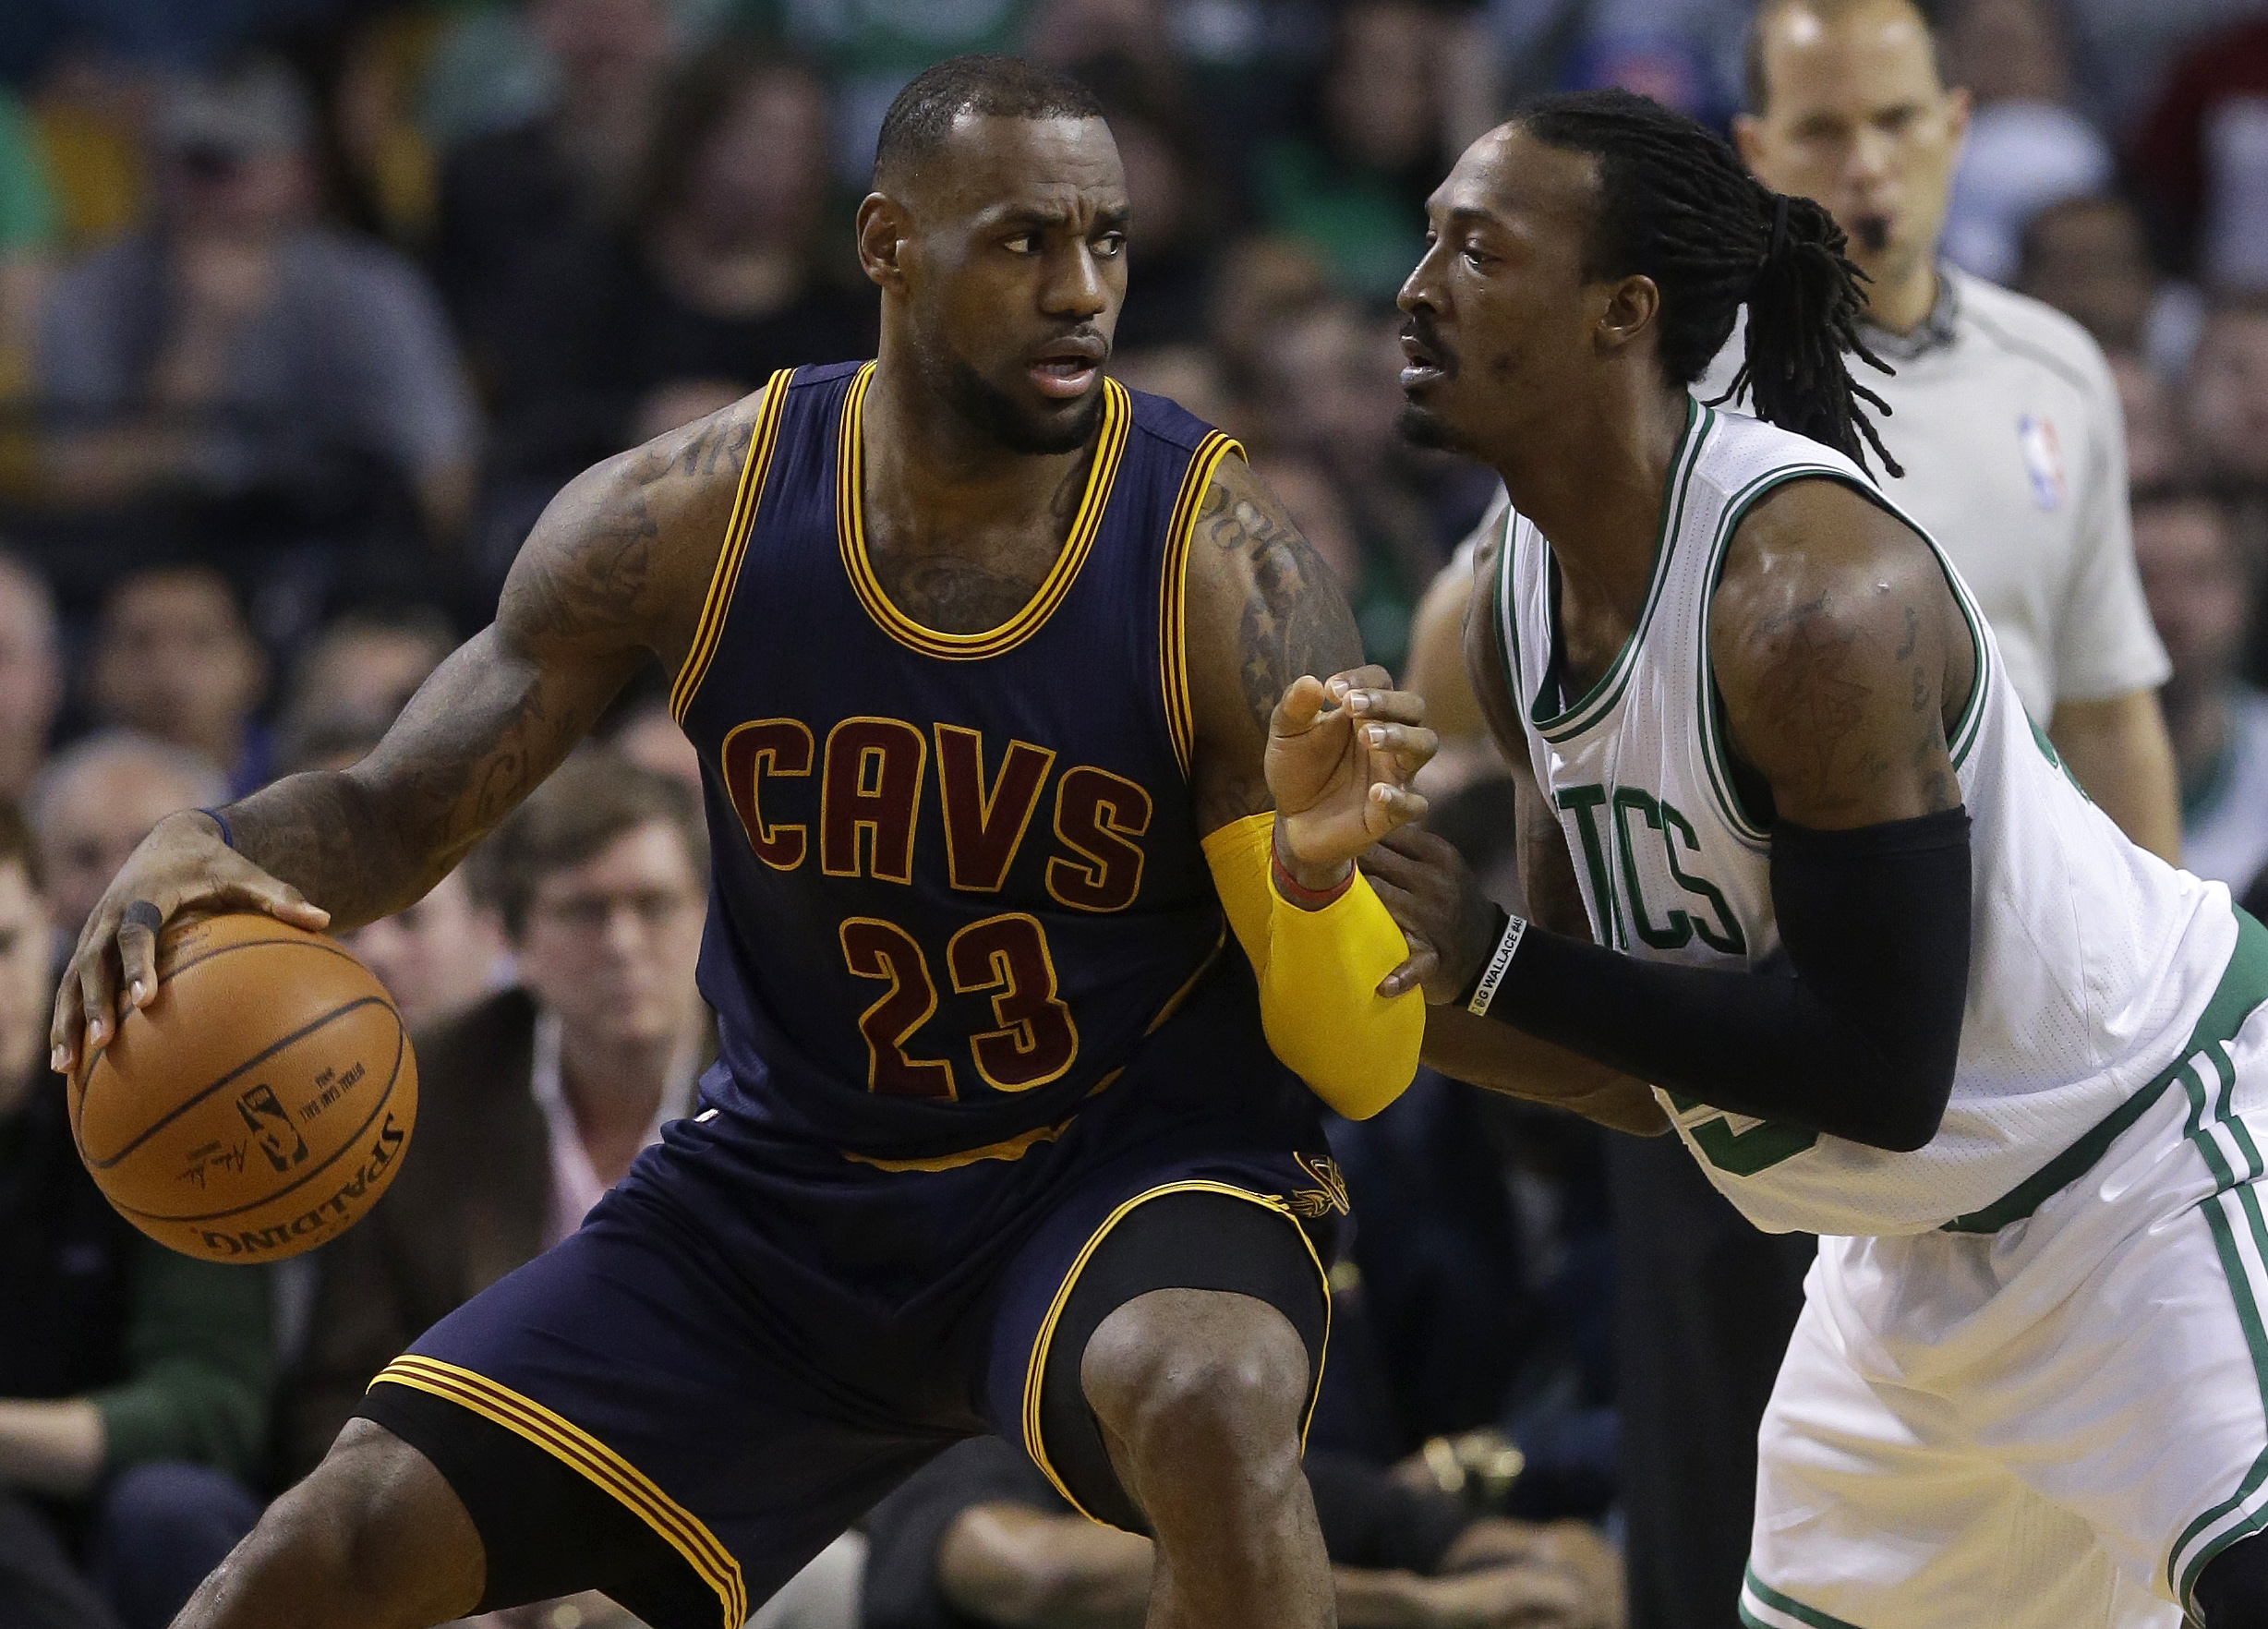 Cleveland Cavaliers forward LeBron James, left, looks for an opening around Boston Celtics forward Gerald Wallace, right, in the second quarter of a first-round NBA playoff basketball game in Boston, Sunday, April 26, 2015. The Cavaliers won 101-93 to complete a first-round sweep of the Celtics. (AP Photo/Steven Senne)